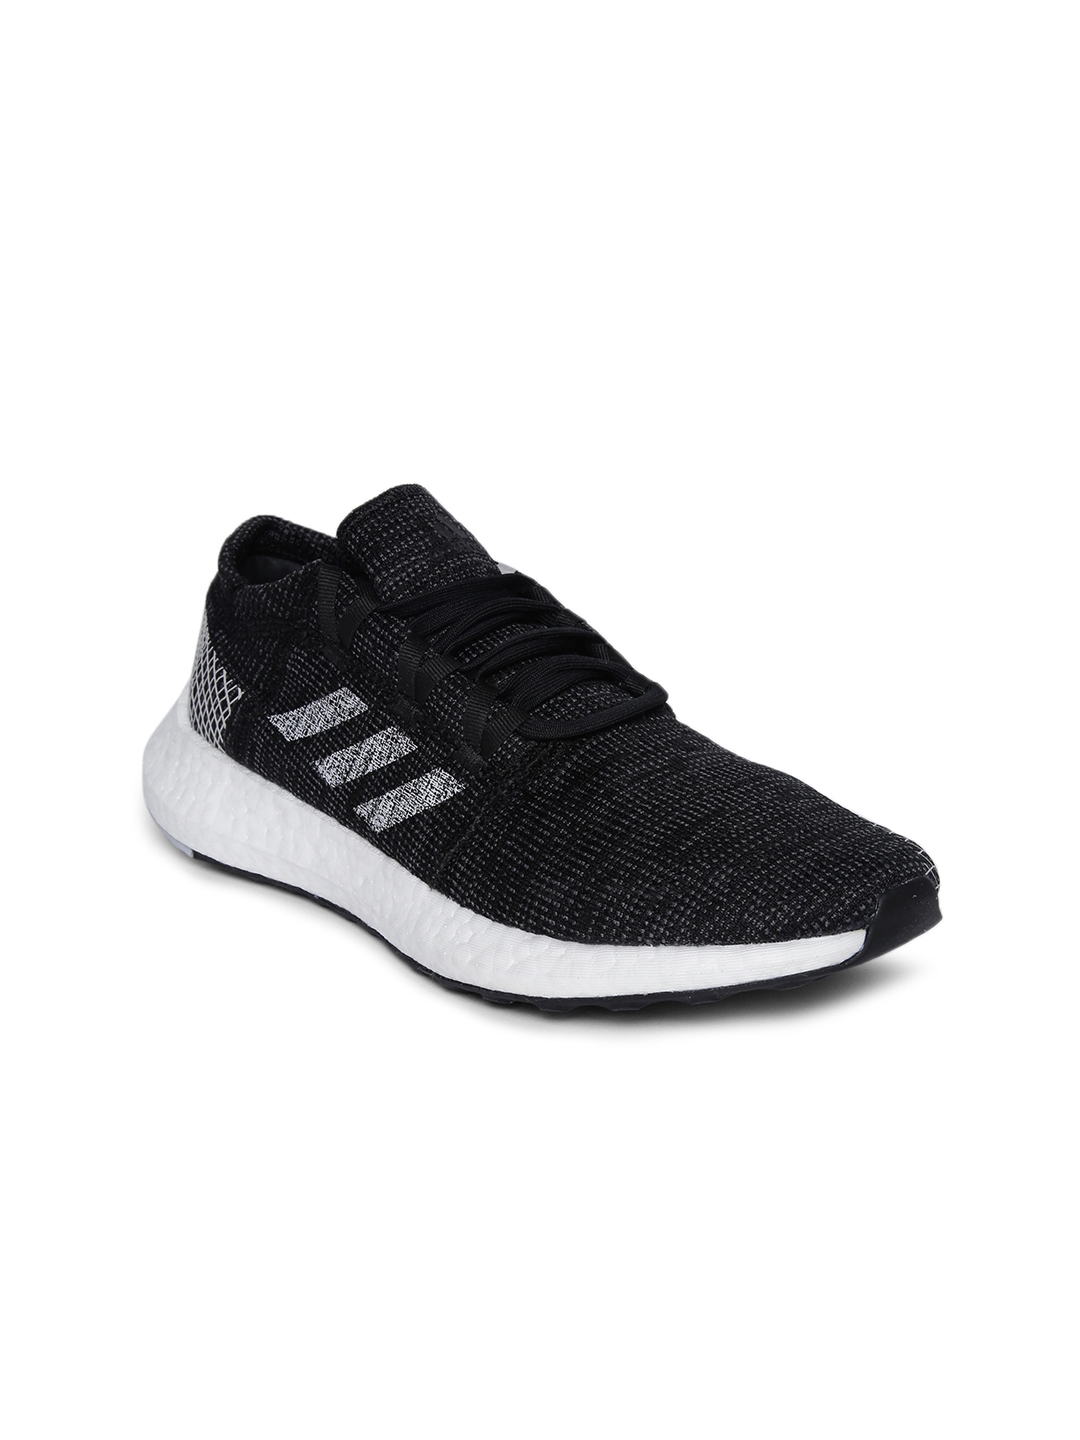 For Pureboost Go Shoes Sports Buy Black Adidas Women Running dxeBorCW